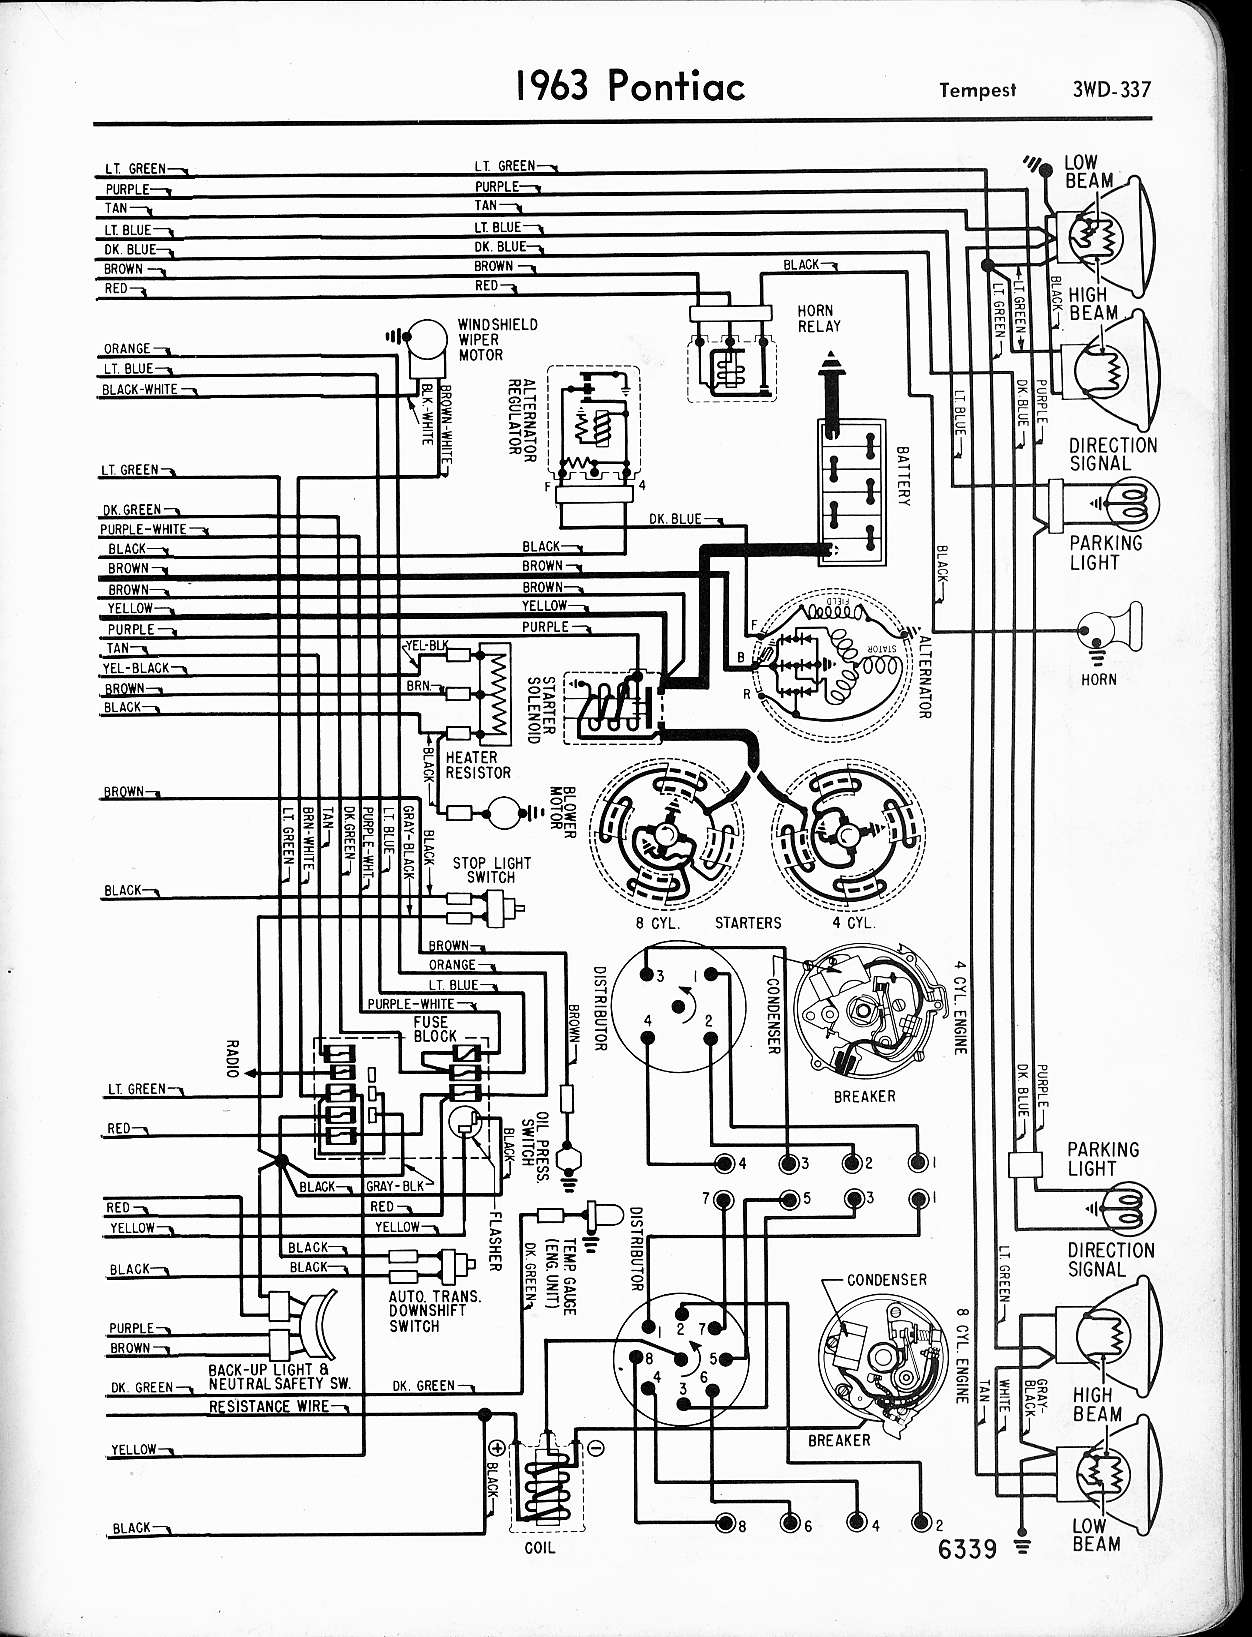 1965 Gto Fuse Box - Wiring Diagram Progresif  Vw Dome Light Wiring Diagram on 1957 vw wiring diagram, 1970 vw beetle wiring diagram, 1960 vw steering, 1960 vw headlights, 1960 vw fuel tank, 1960 vw engine, 67 vw wiring diagram, 1979 vw beetle wiring diagram, 1968 vw beetle wiring diagram, 1960 vw motor, 1973 vw wiring diagram, 1972 vw wiring diagram, 70 vw wiring diagram, 1969 vw wiring diagram,